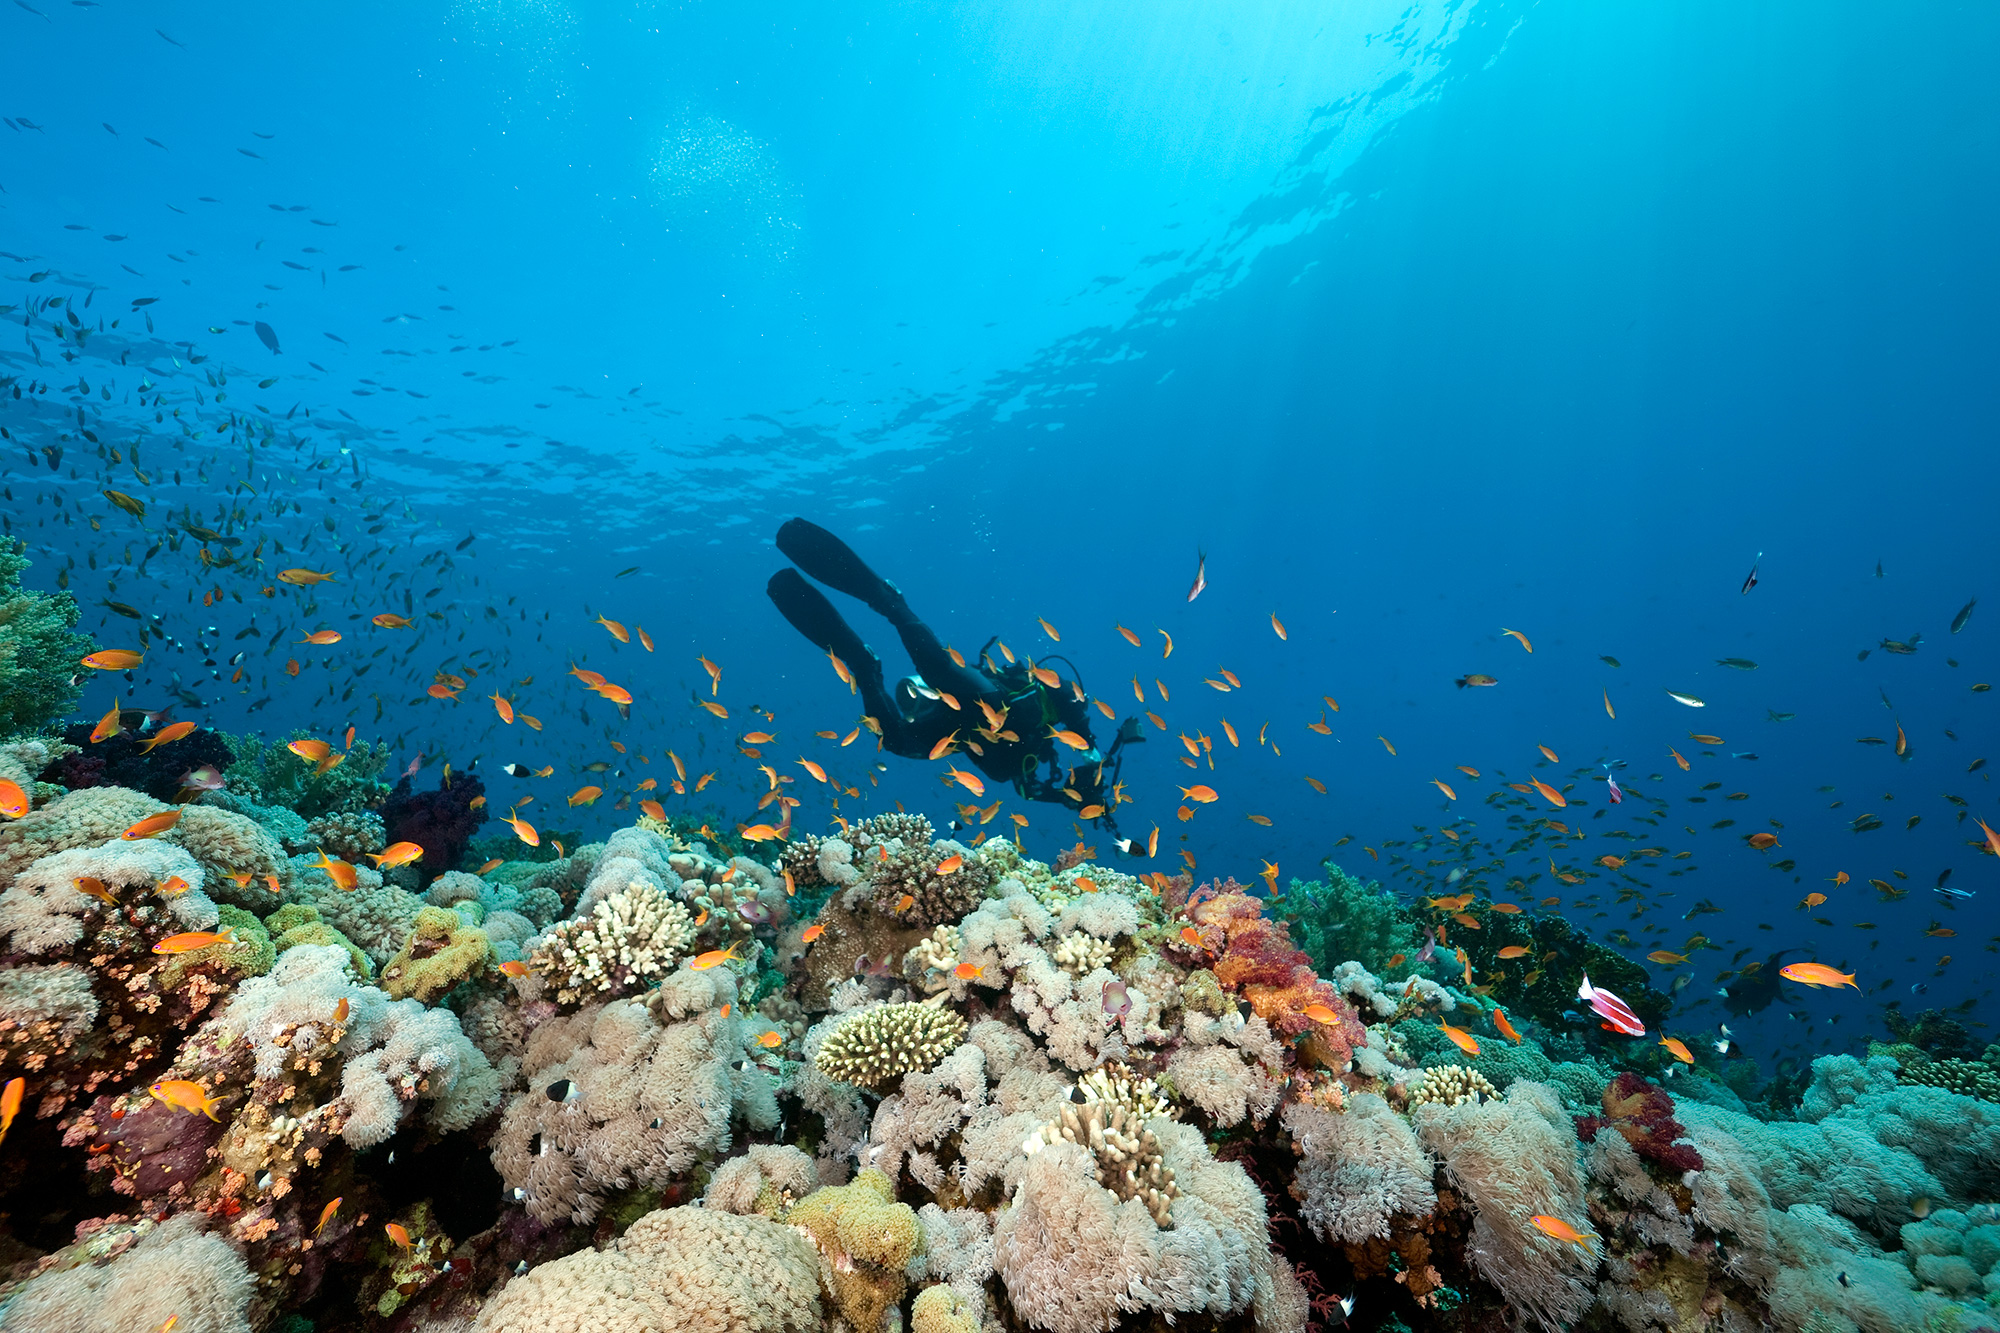 Image from Dive Bohol